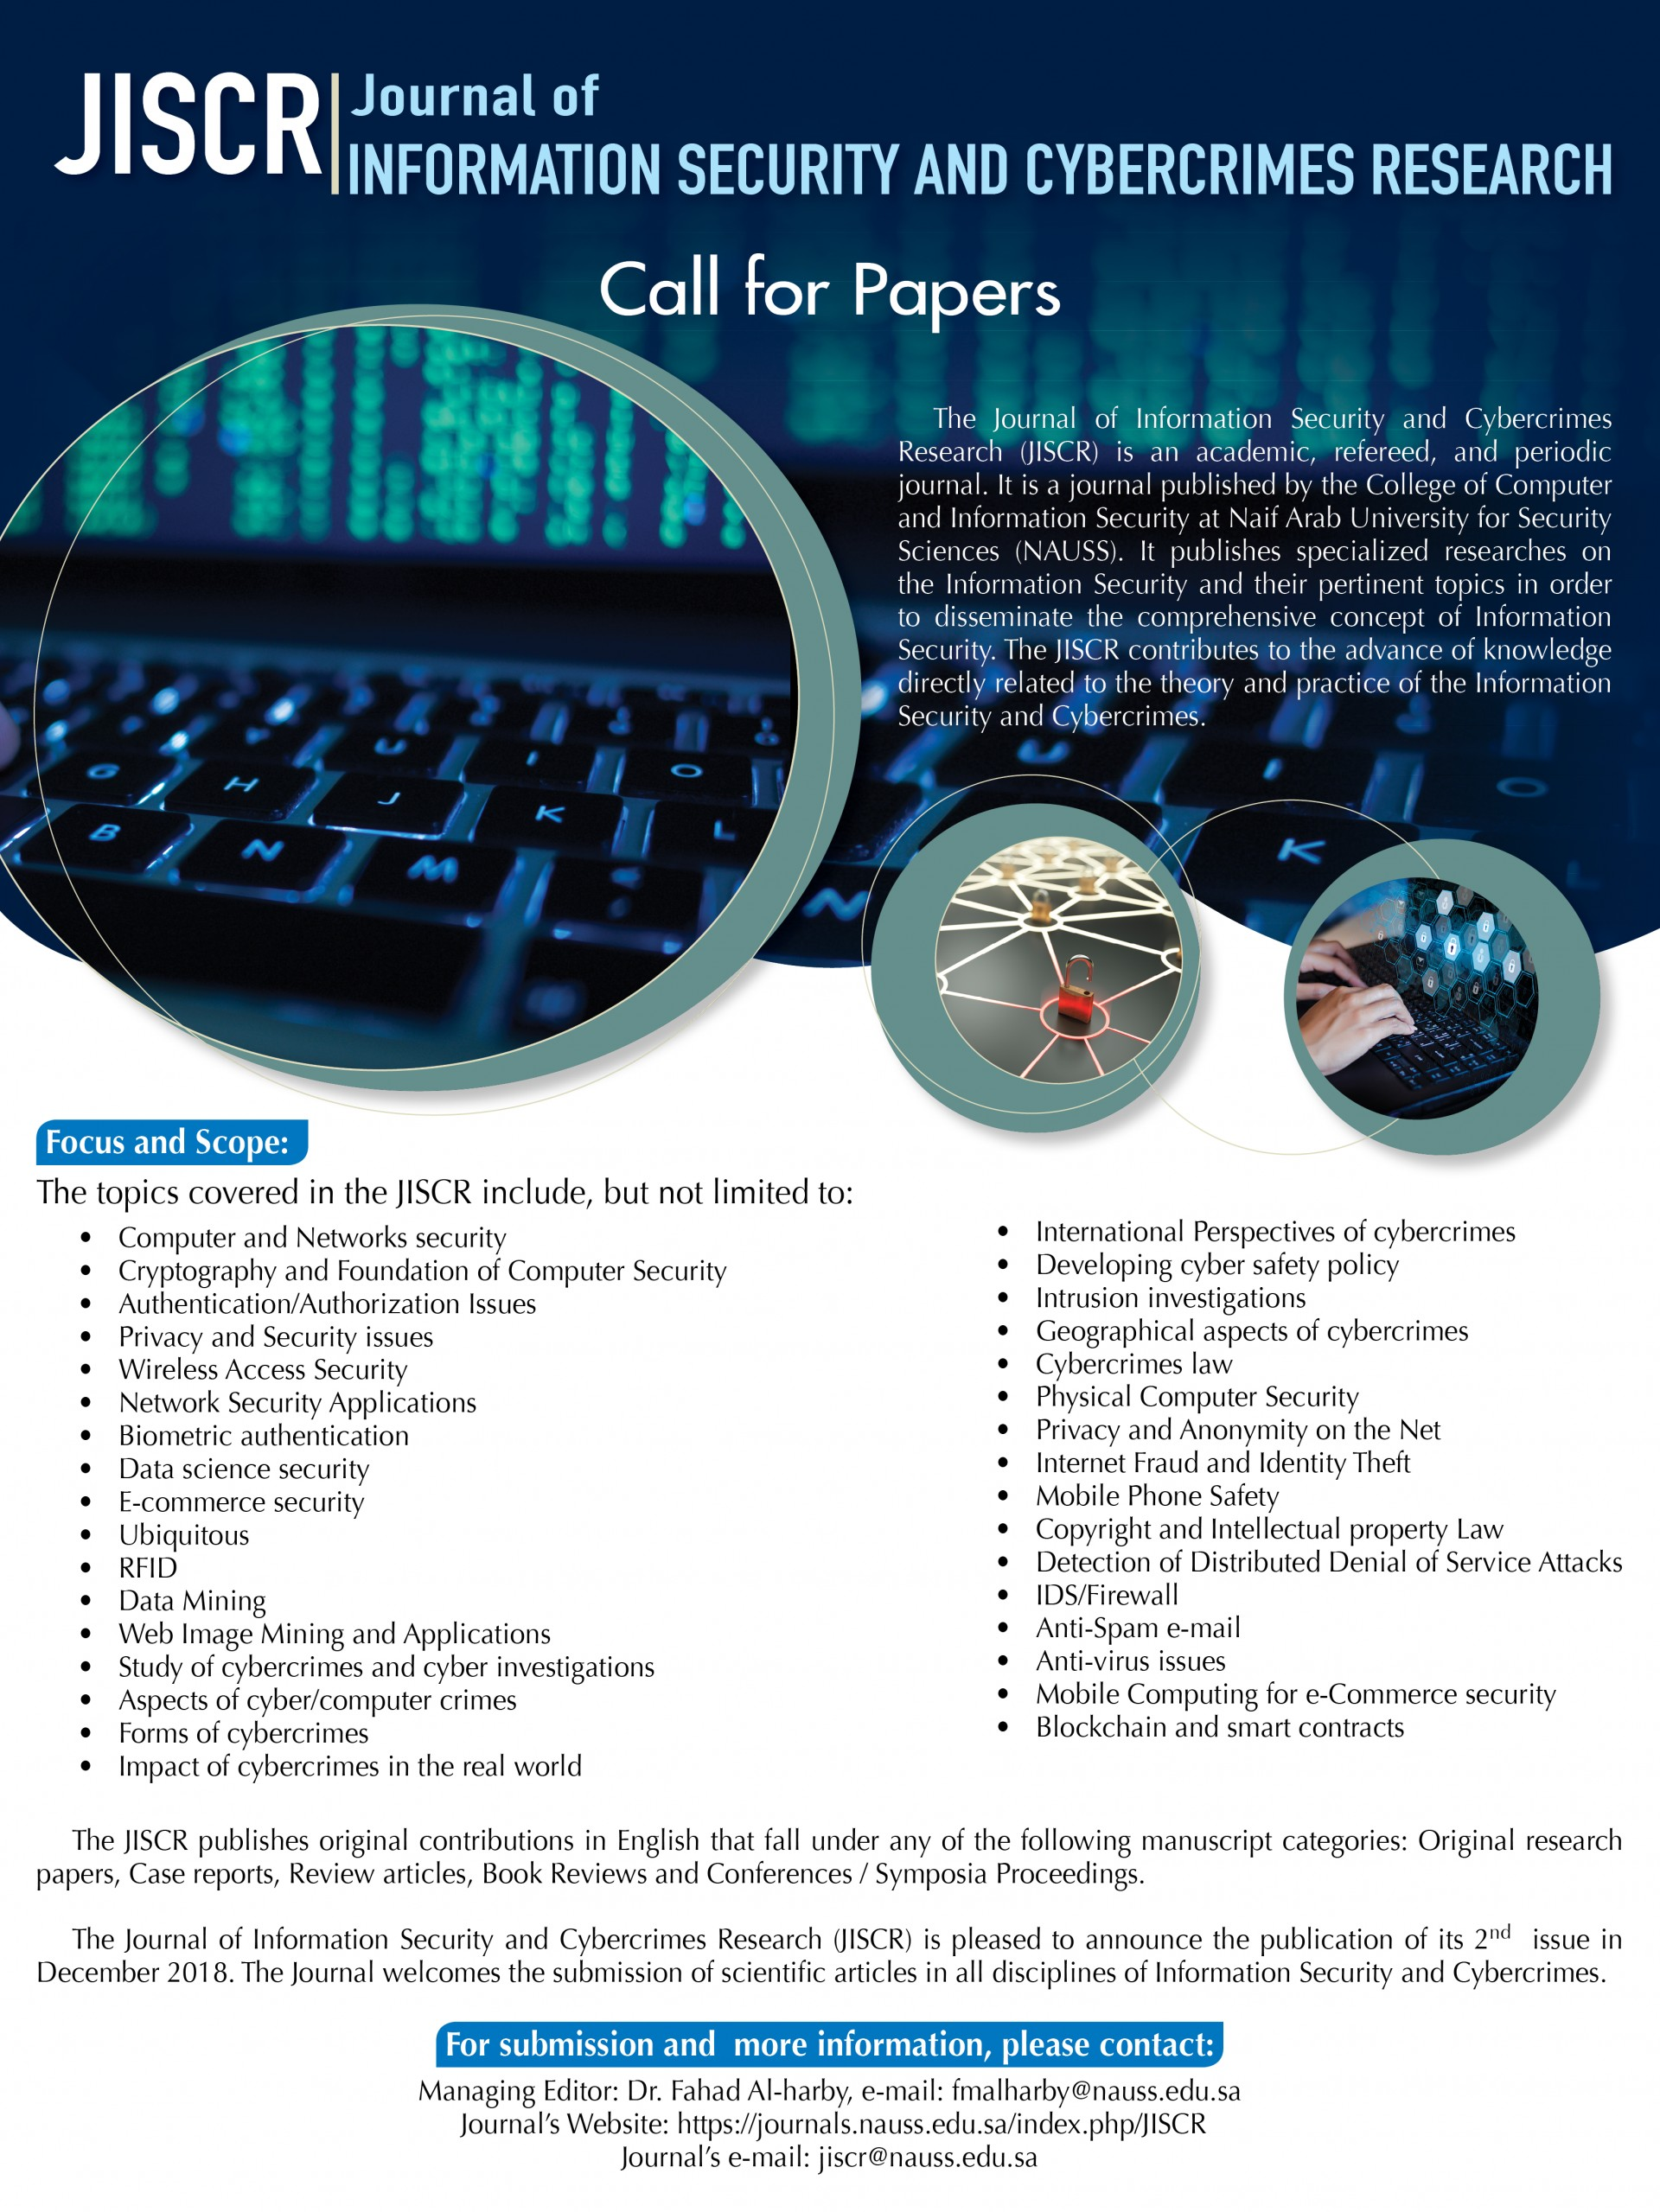 009 Research Paper Call For December Cyber Security Papers Amazing Pdf On 1920